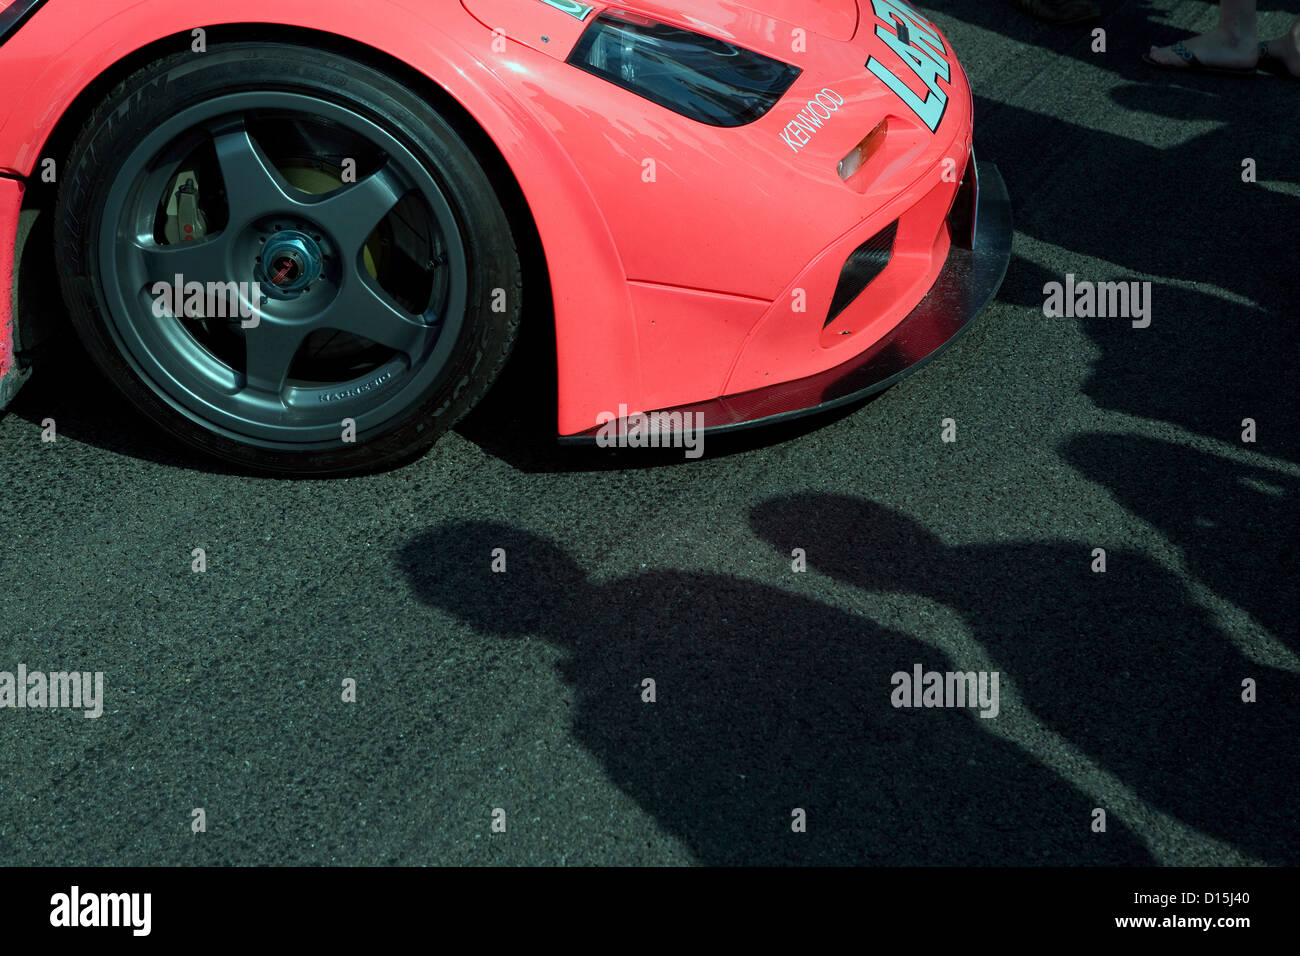 The shadows of people looking at the front of a pink Mclaren F1 racing car at a car show. Stock Photo